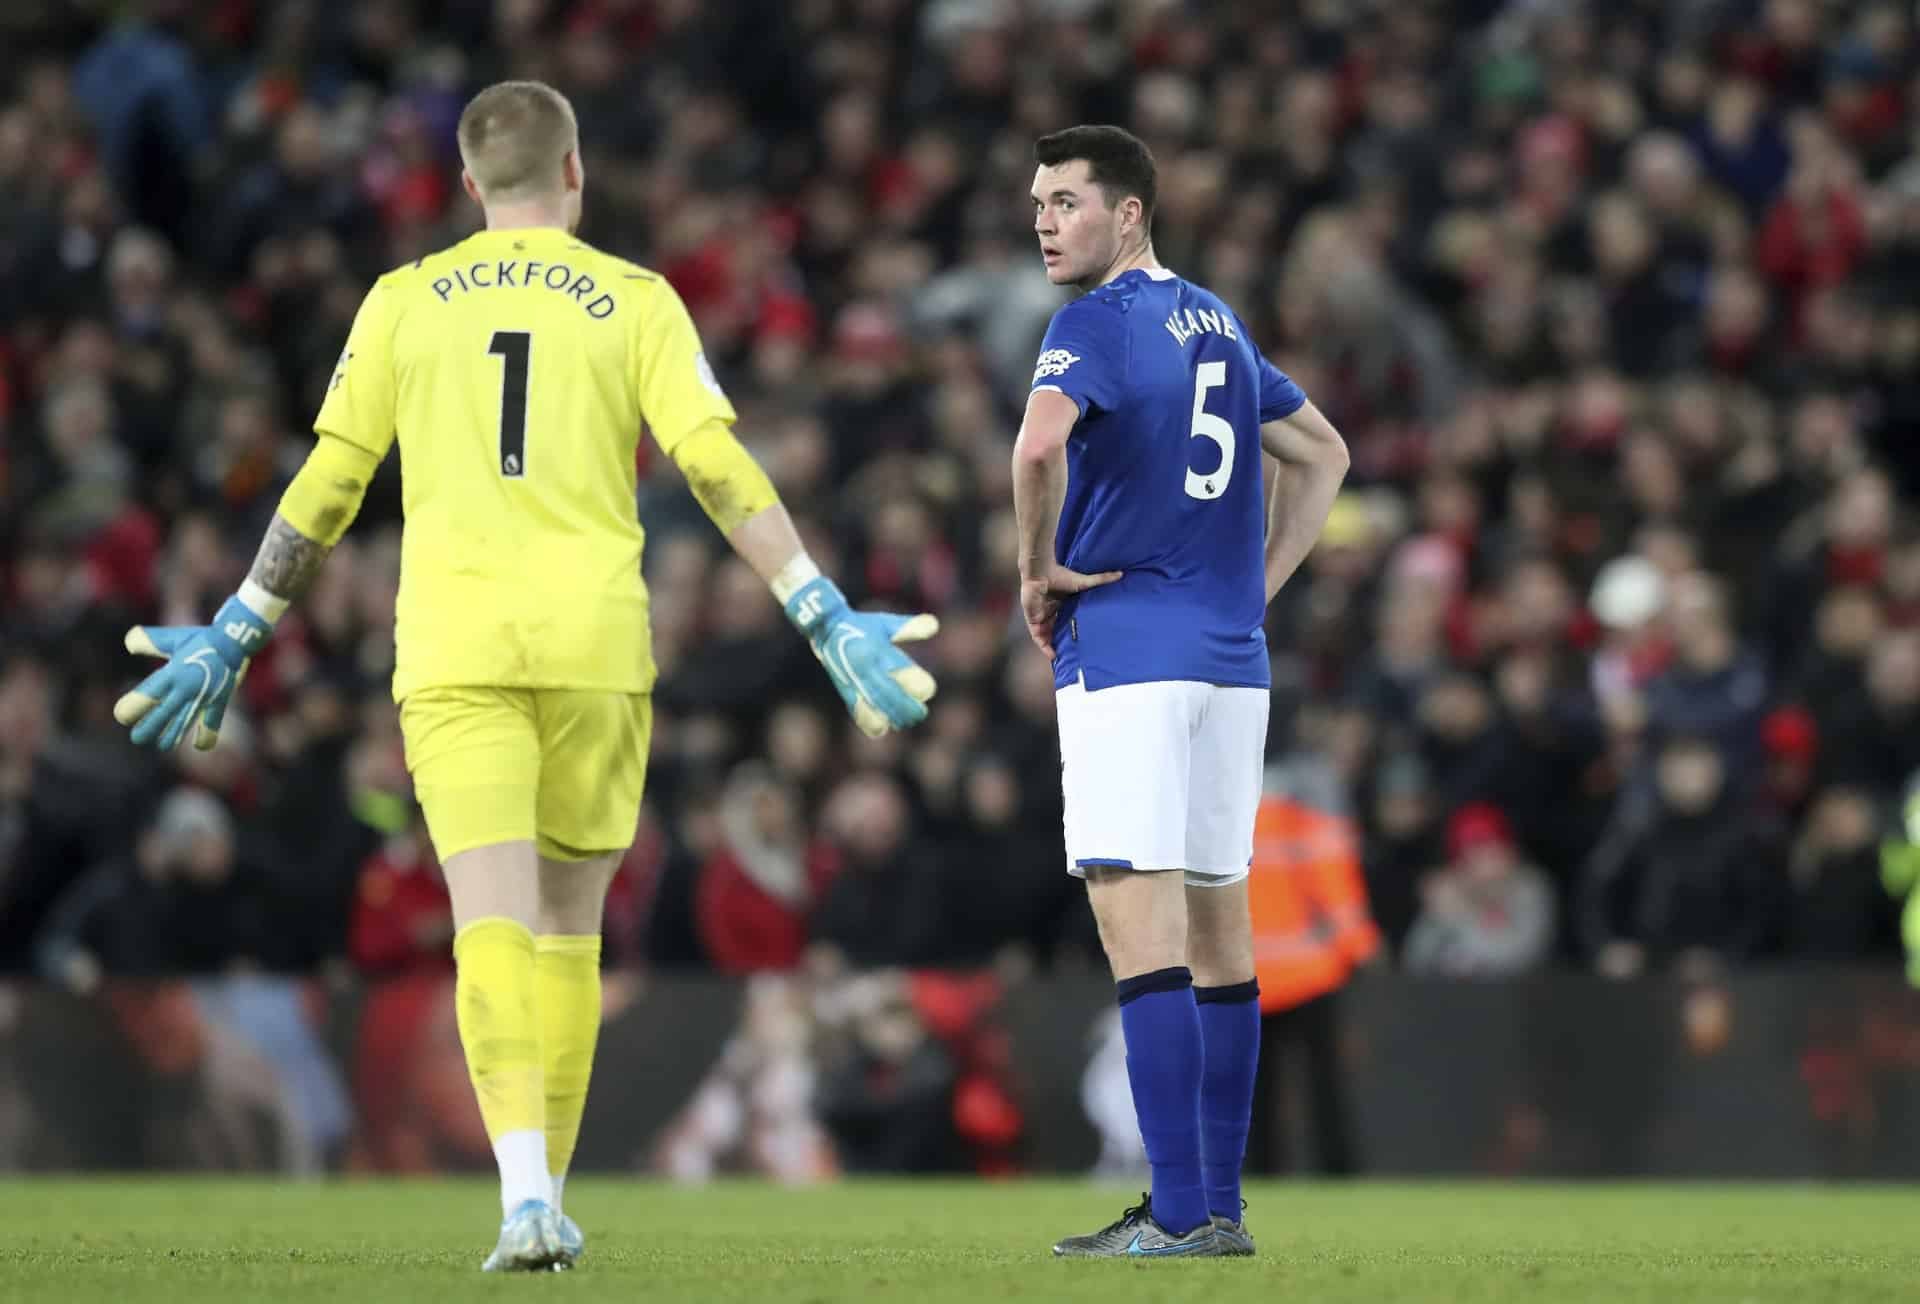 pickford keane